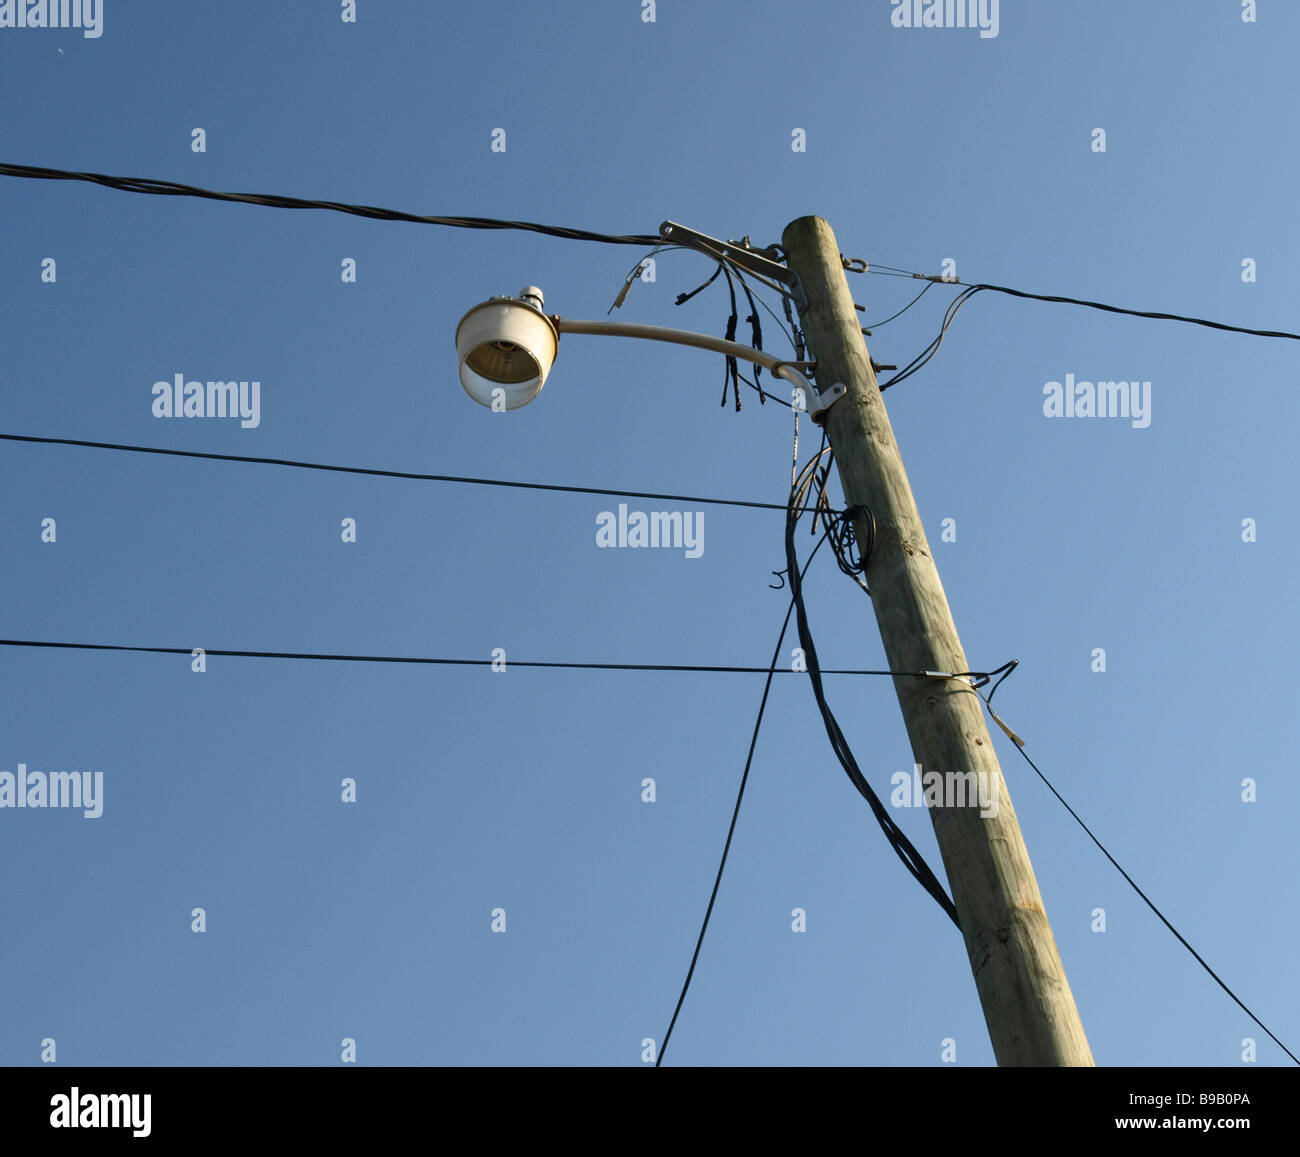 hight resolution of sillouette utility pole and wires and street lamp telephone blue sky background